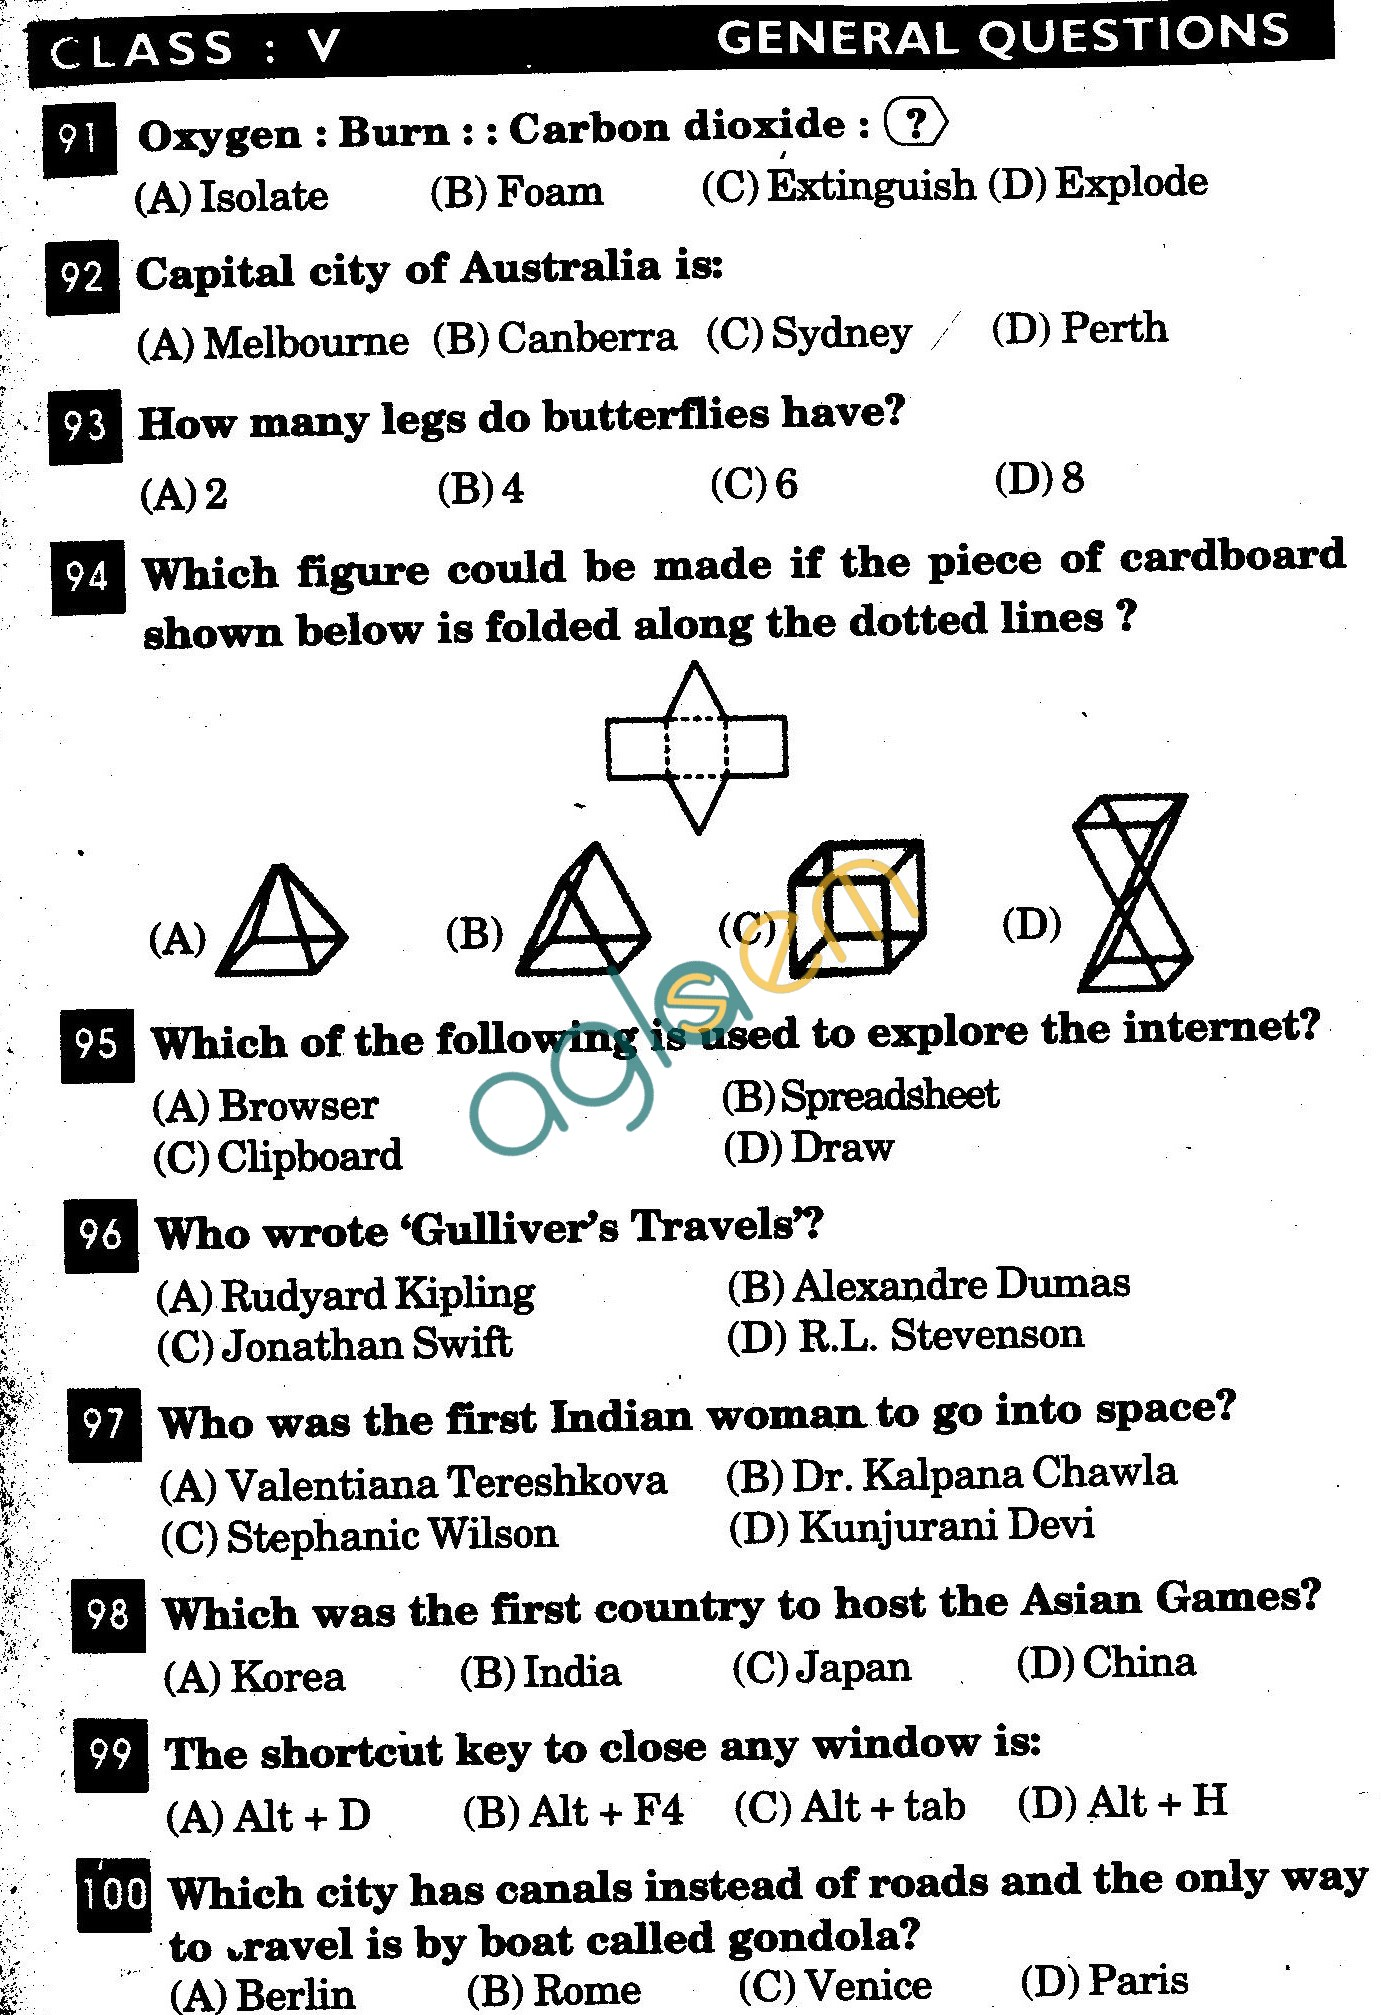 NSTSE 2011 Class V Question Paper with Answers - General Knowledge